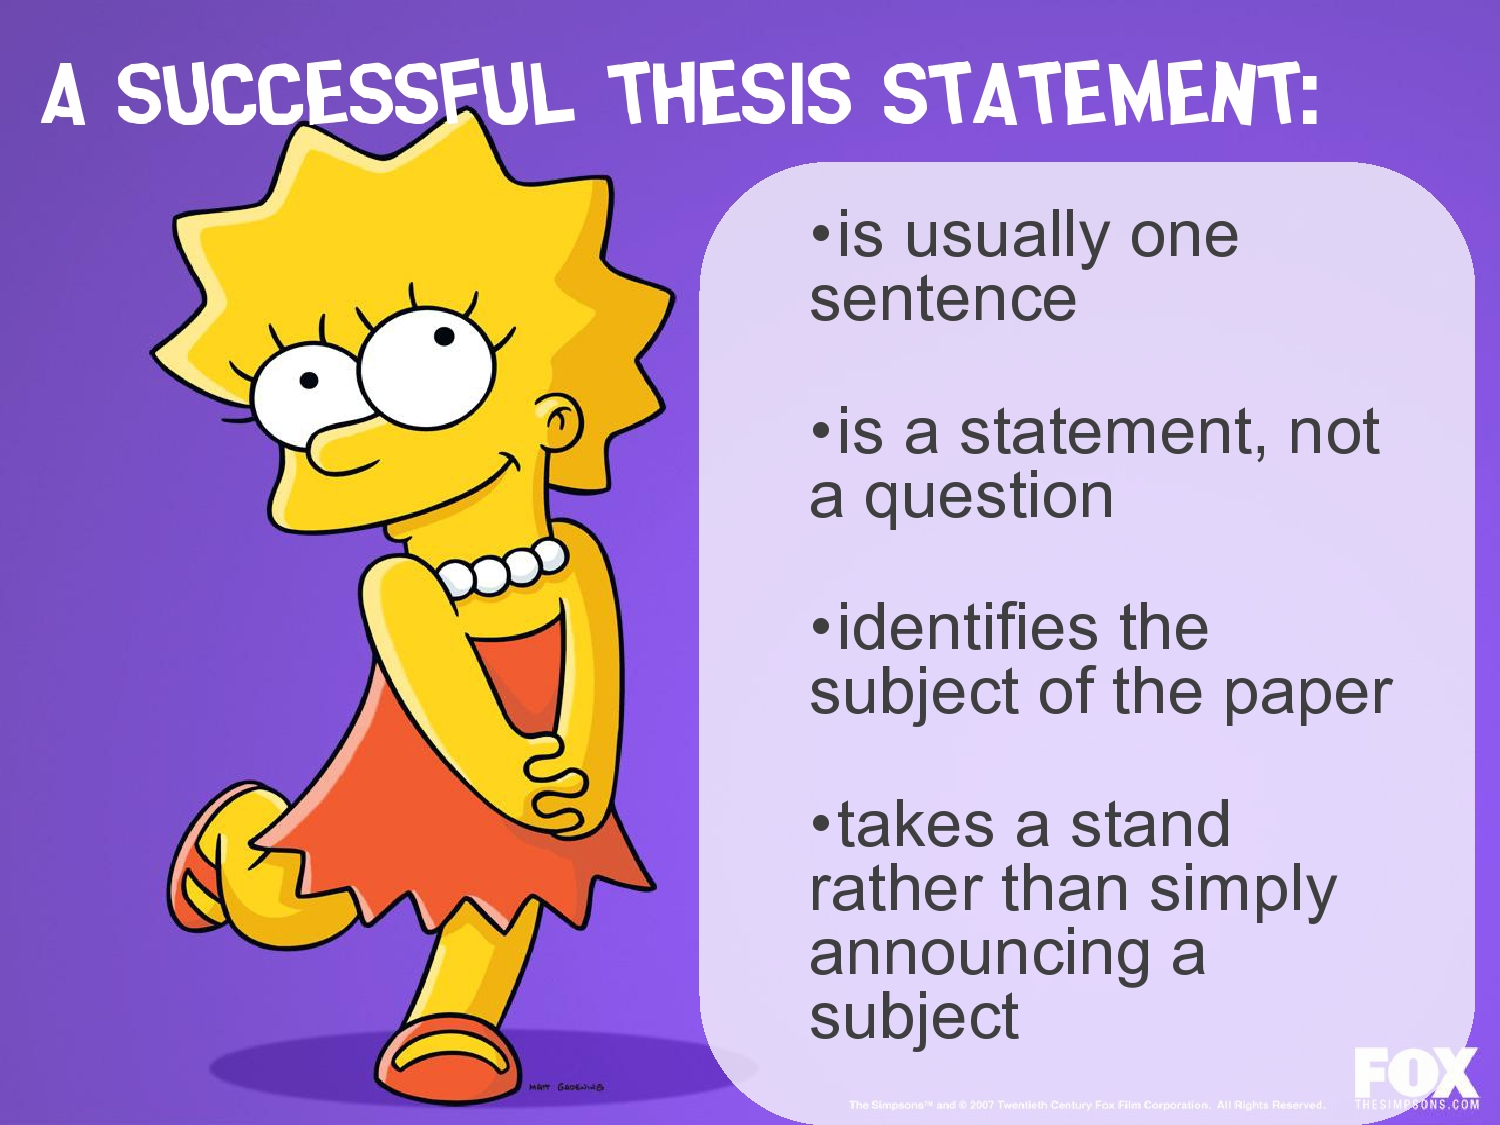 thesis for essay custom writing thesis help writing topics distributed intelligence essay writinglisathesis